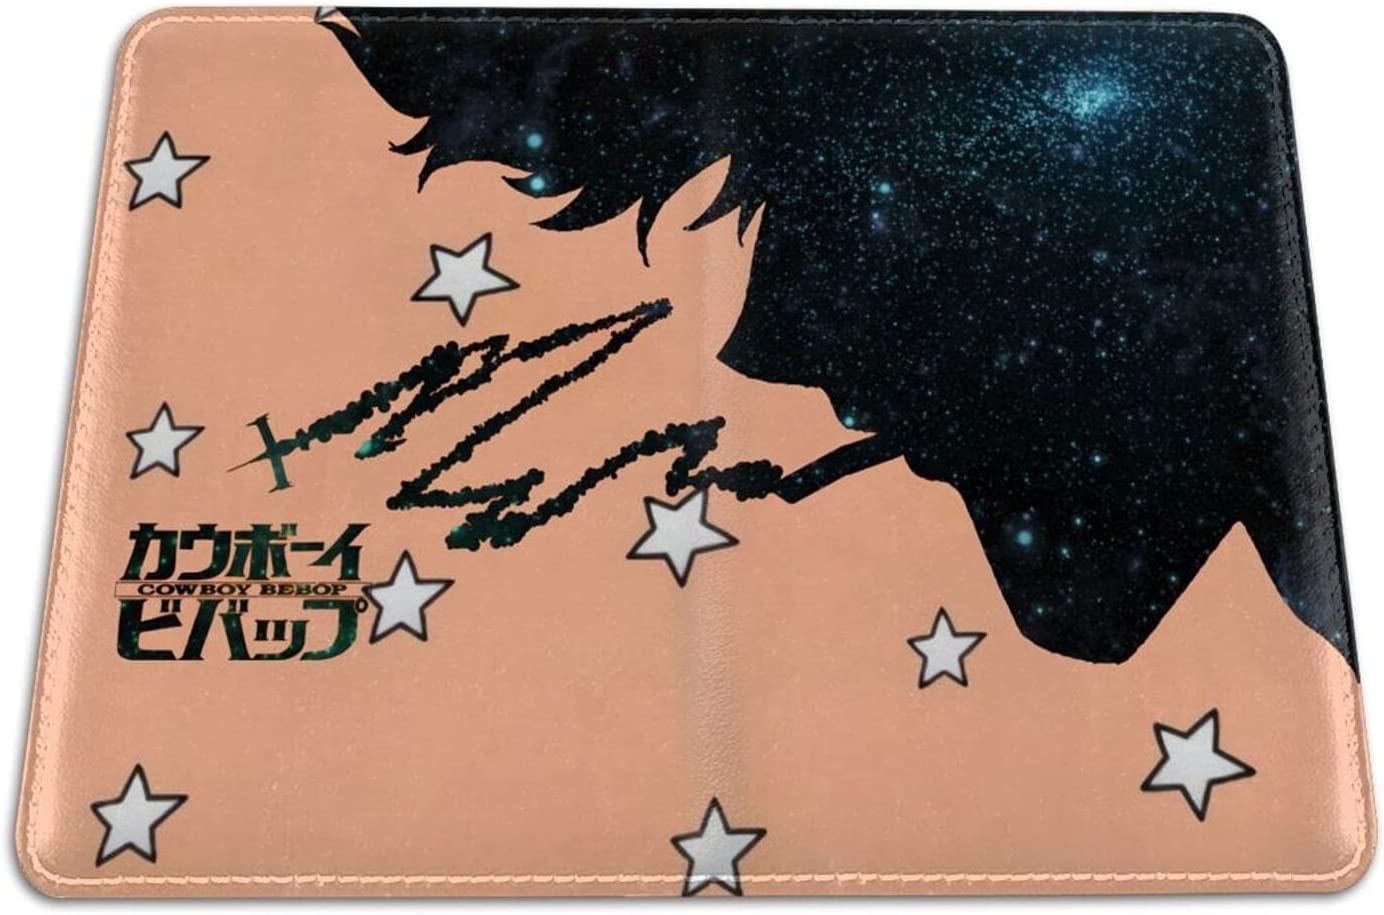 Cowboy Bebop New Shipping Free Spike Anime Passport New popularity With Wallet Card Cover Holder